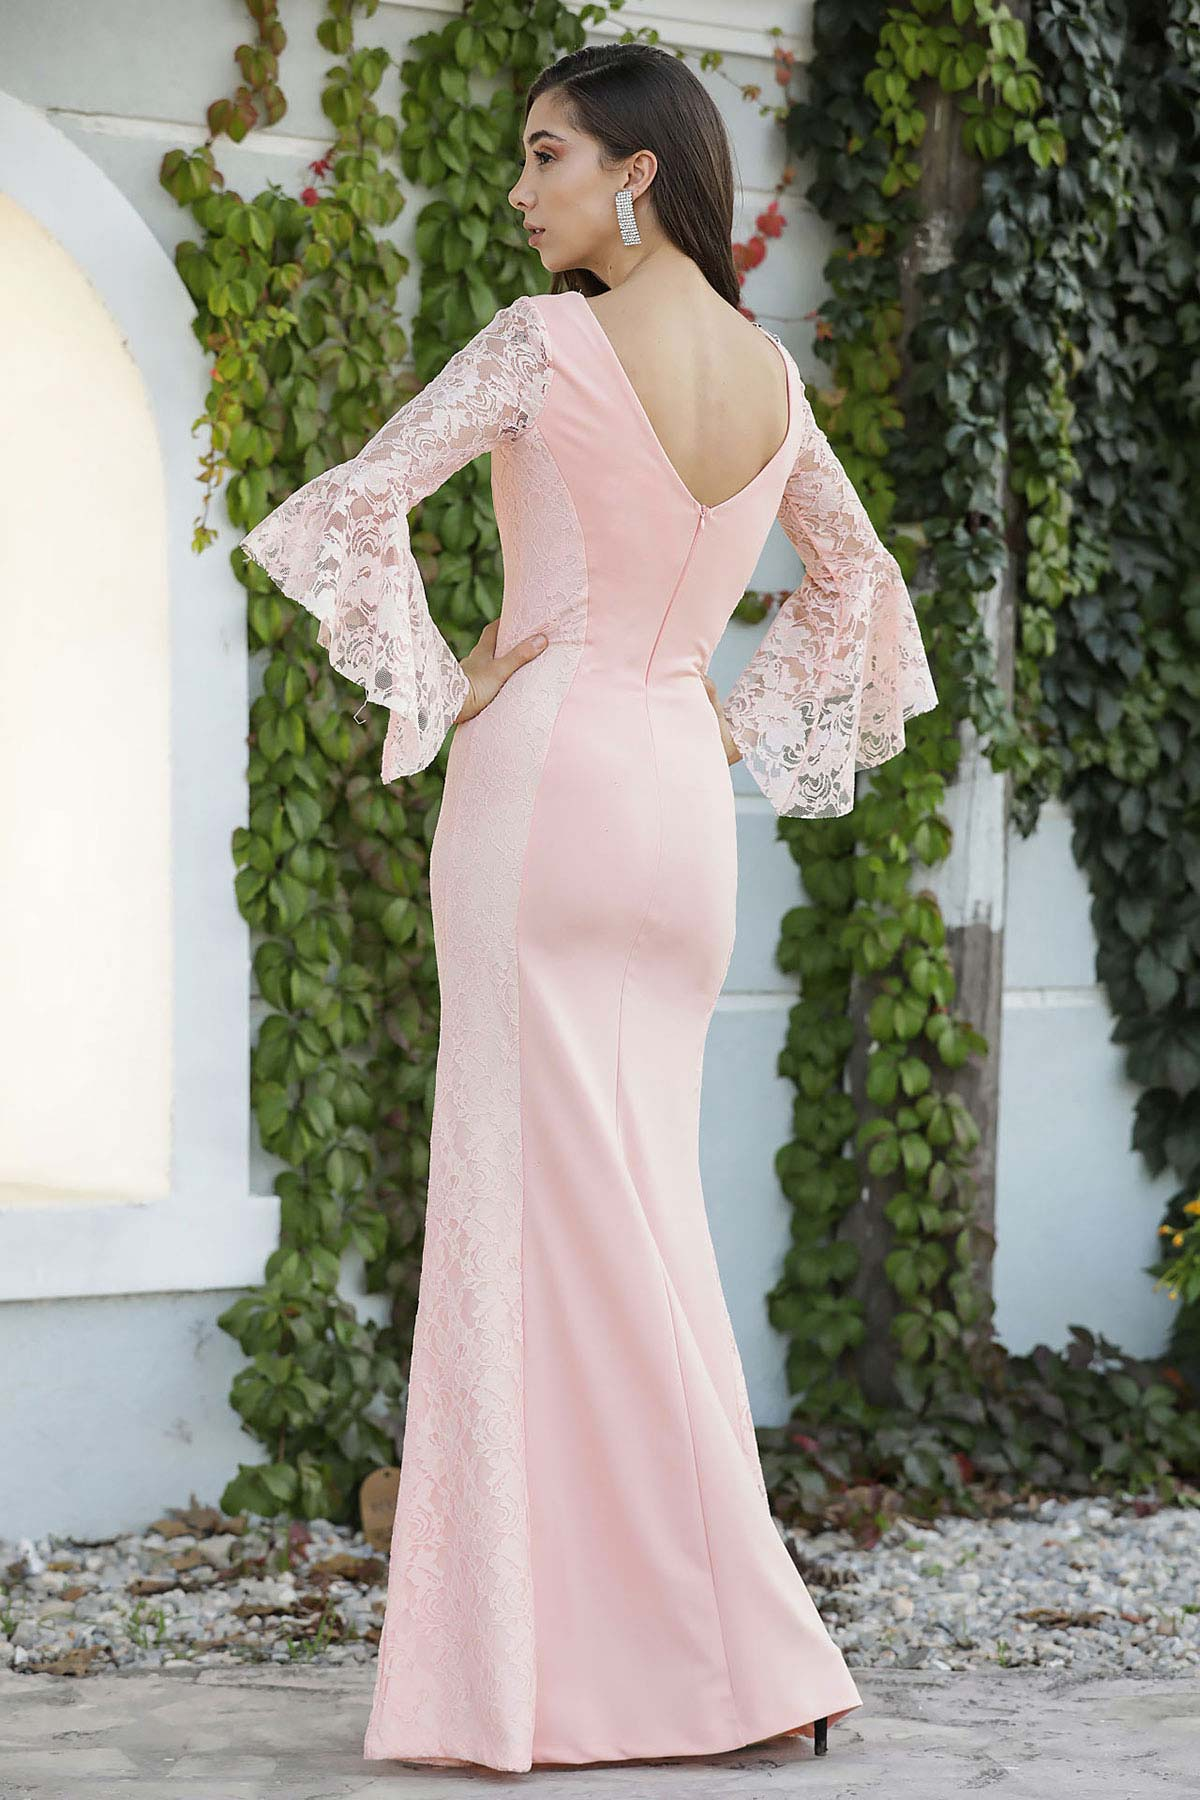 Women's Lace Detail Powder Rose Evening Dress